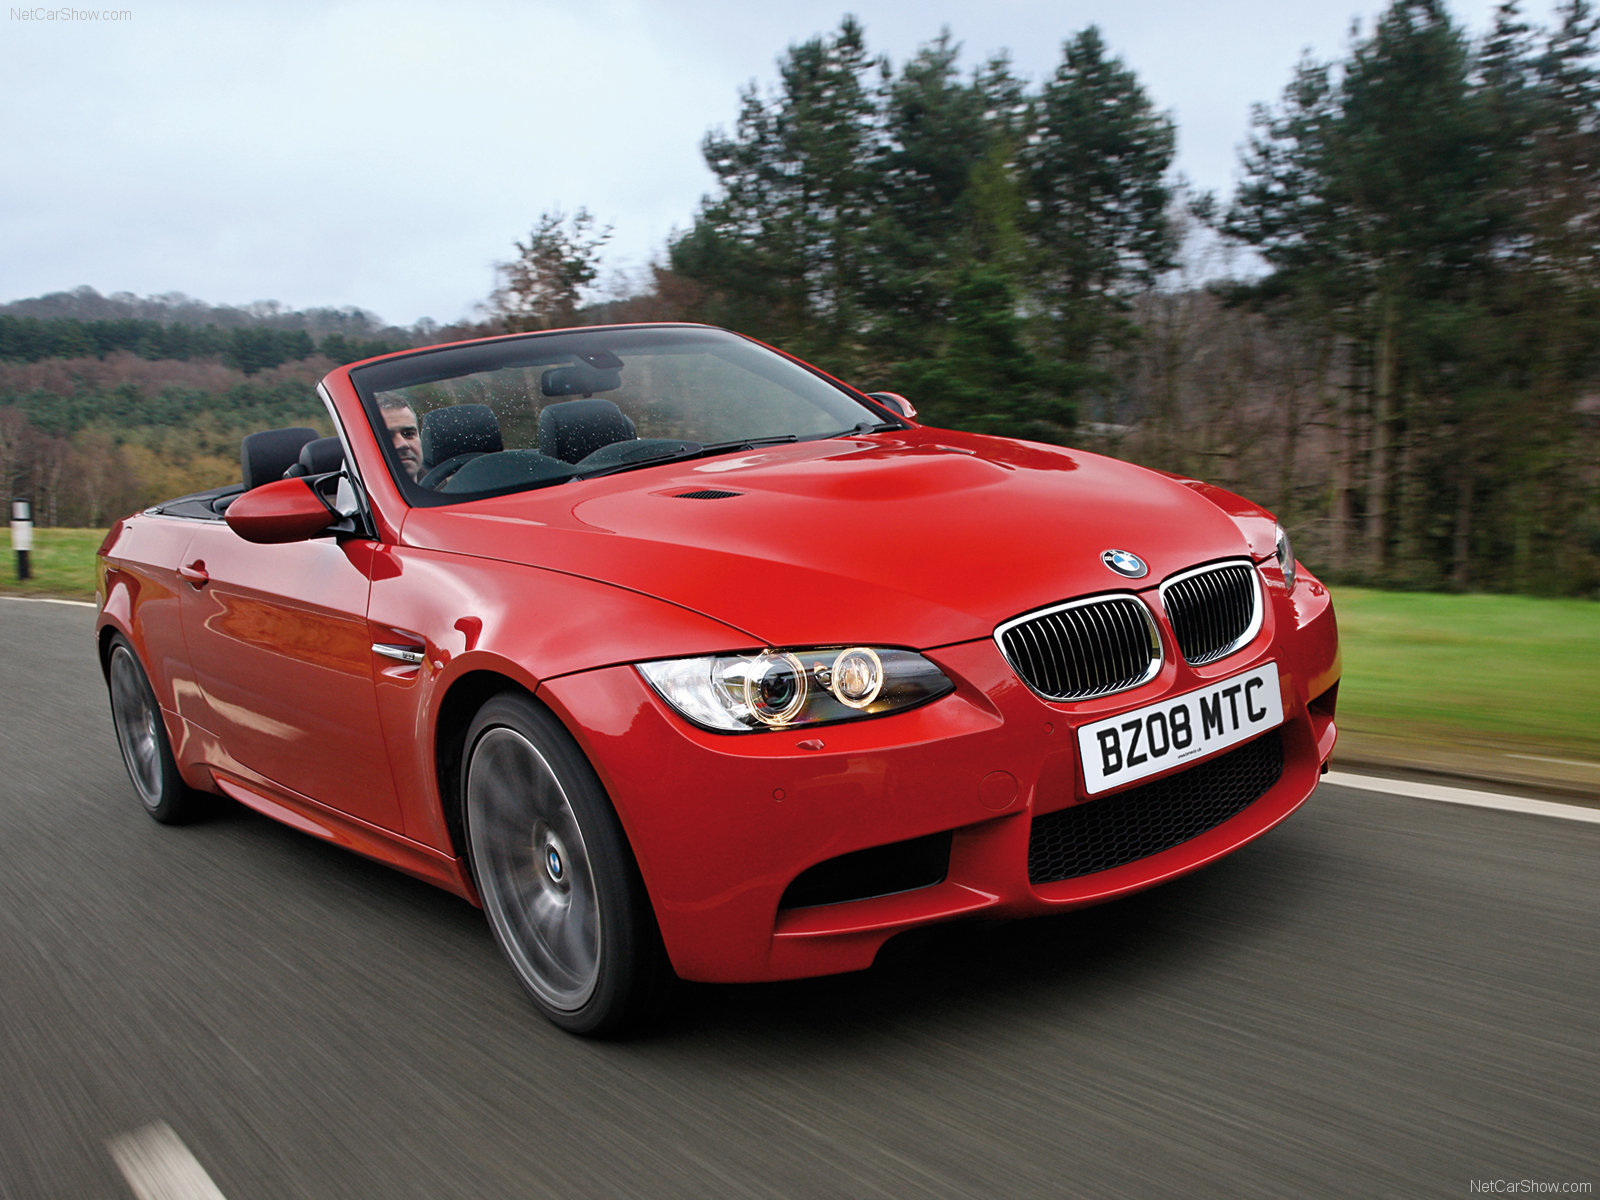 Bmw M3 E93 Convertible Photos Photogallery With 44 Pics Carsbase Com